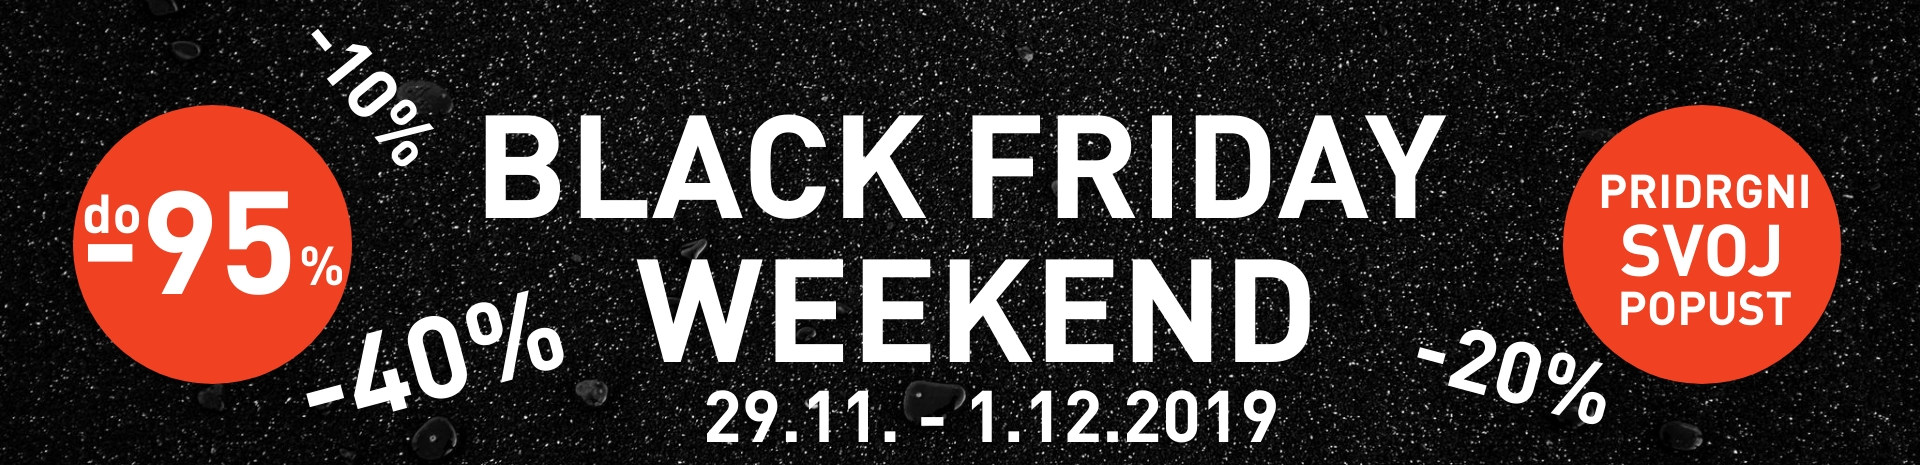 Inposova Black Friday Weekend Akcija 2019